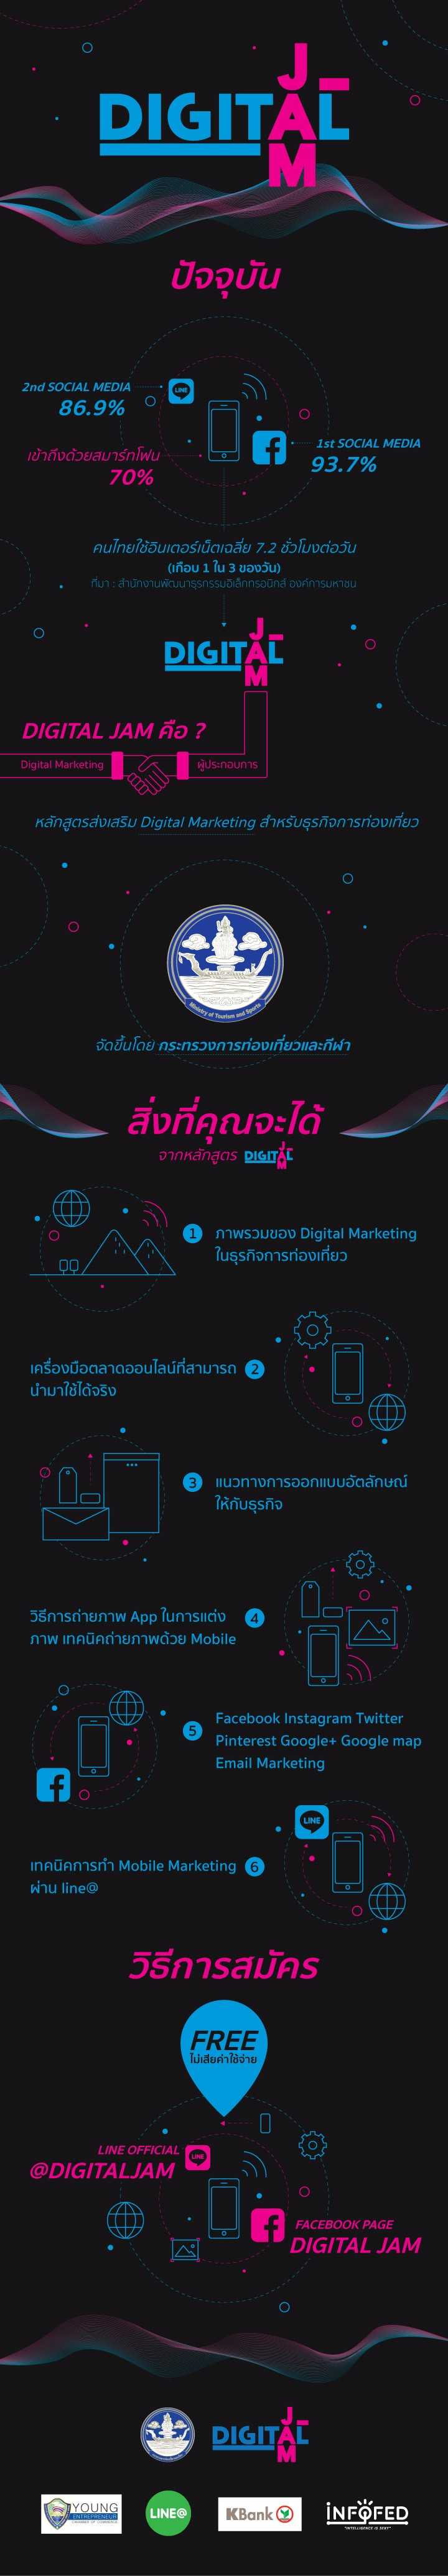 [infographic] #DigitalJam2016 คืออะไร